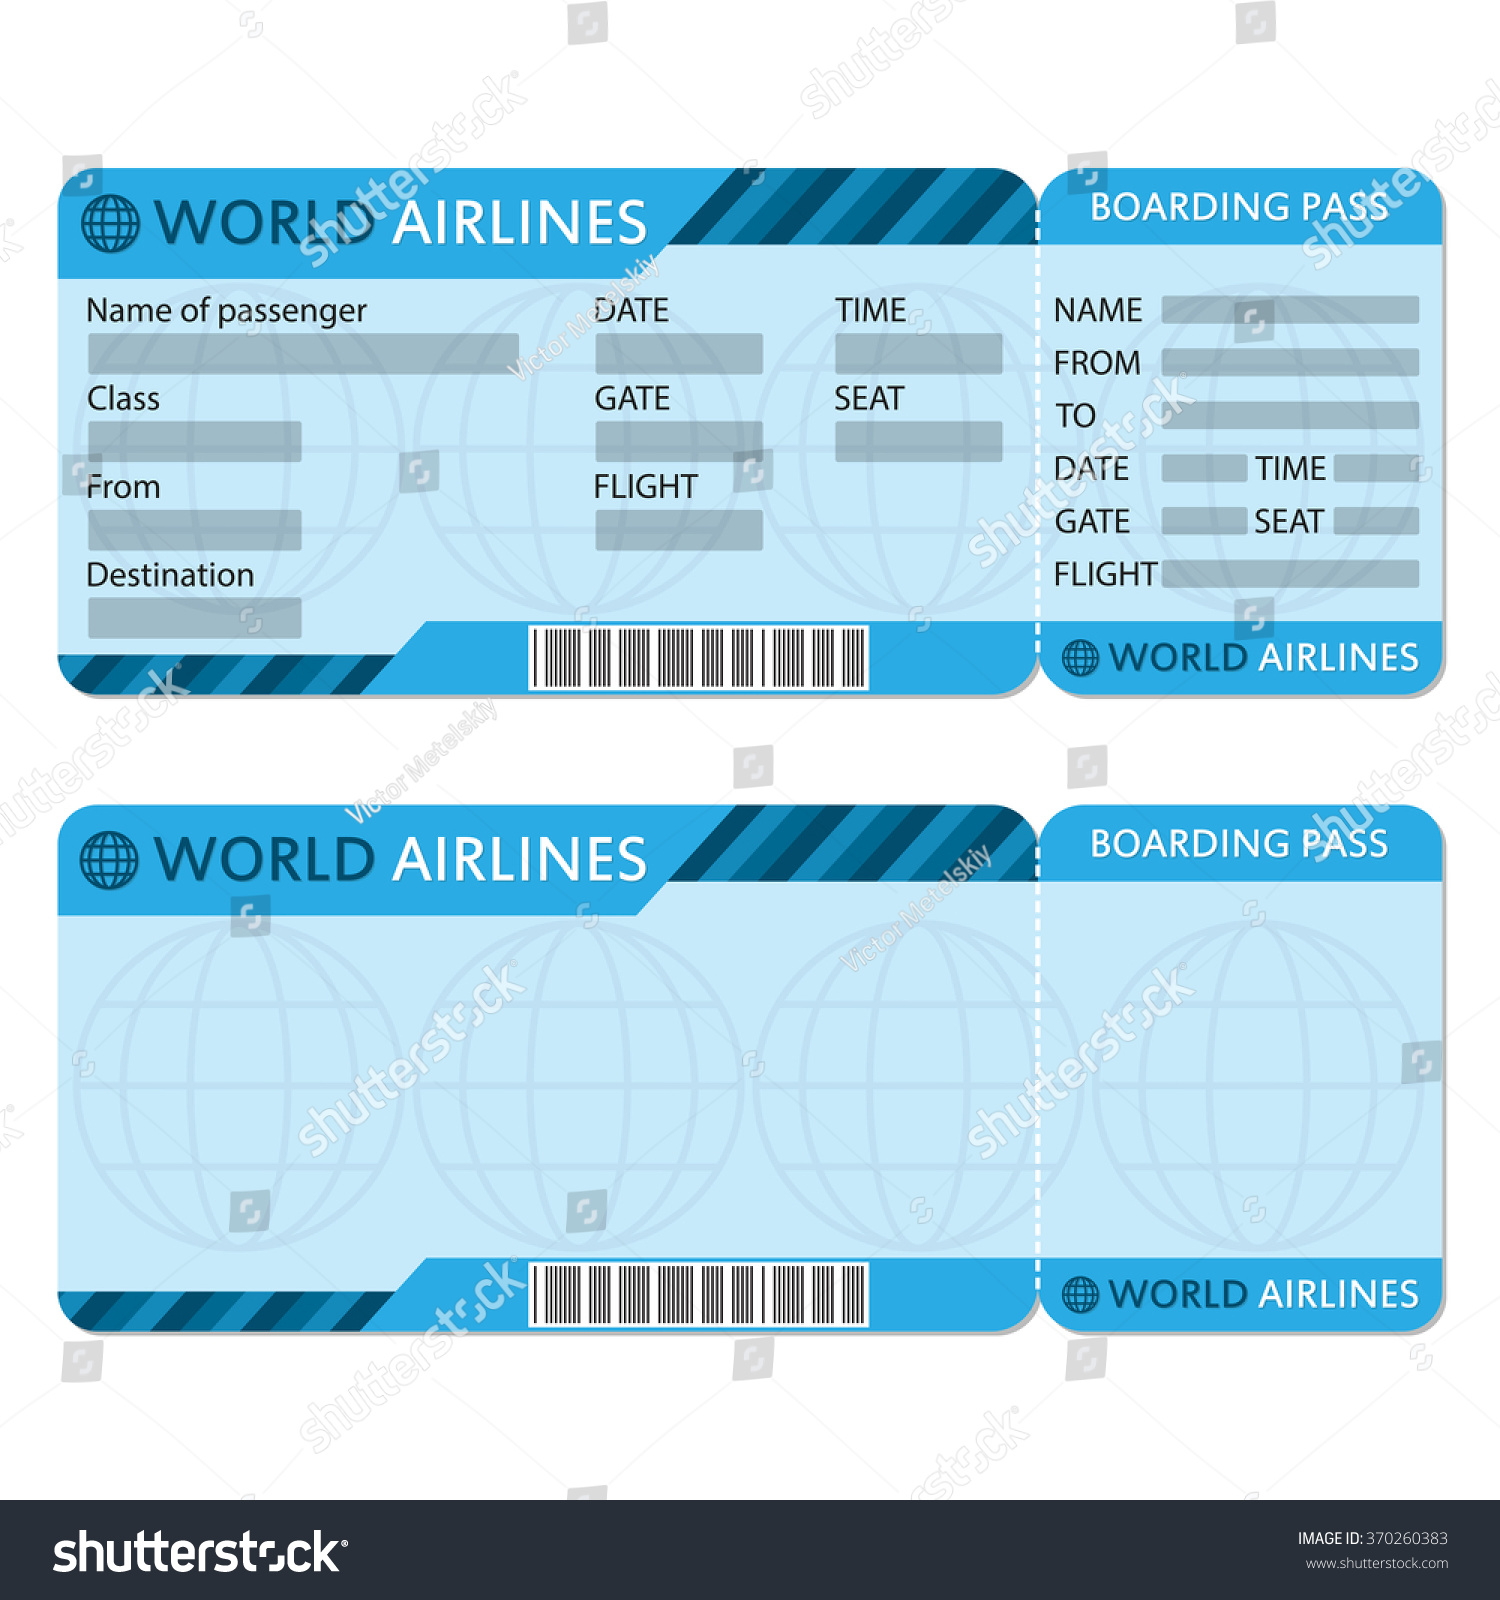 Airline Plane Ticket Pictures to Pin on Pinterest - PinsDaddy Onetravel